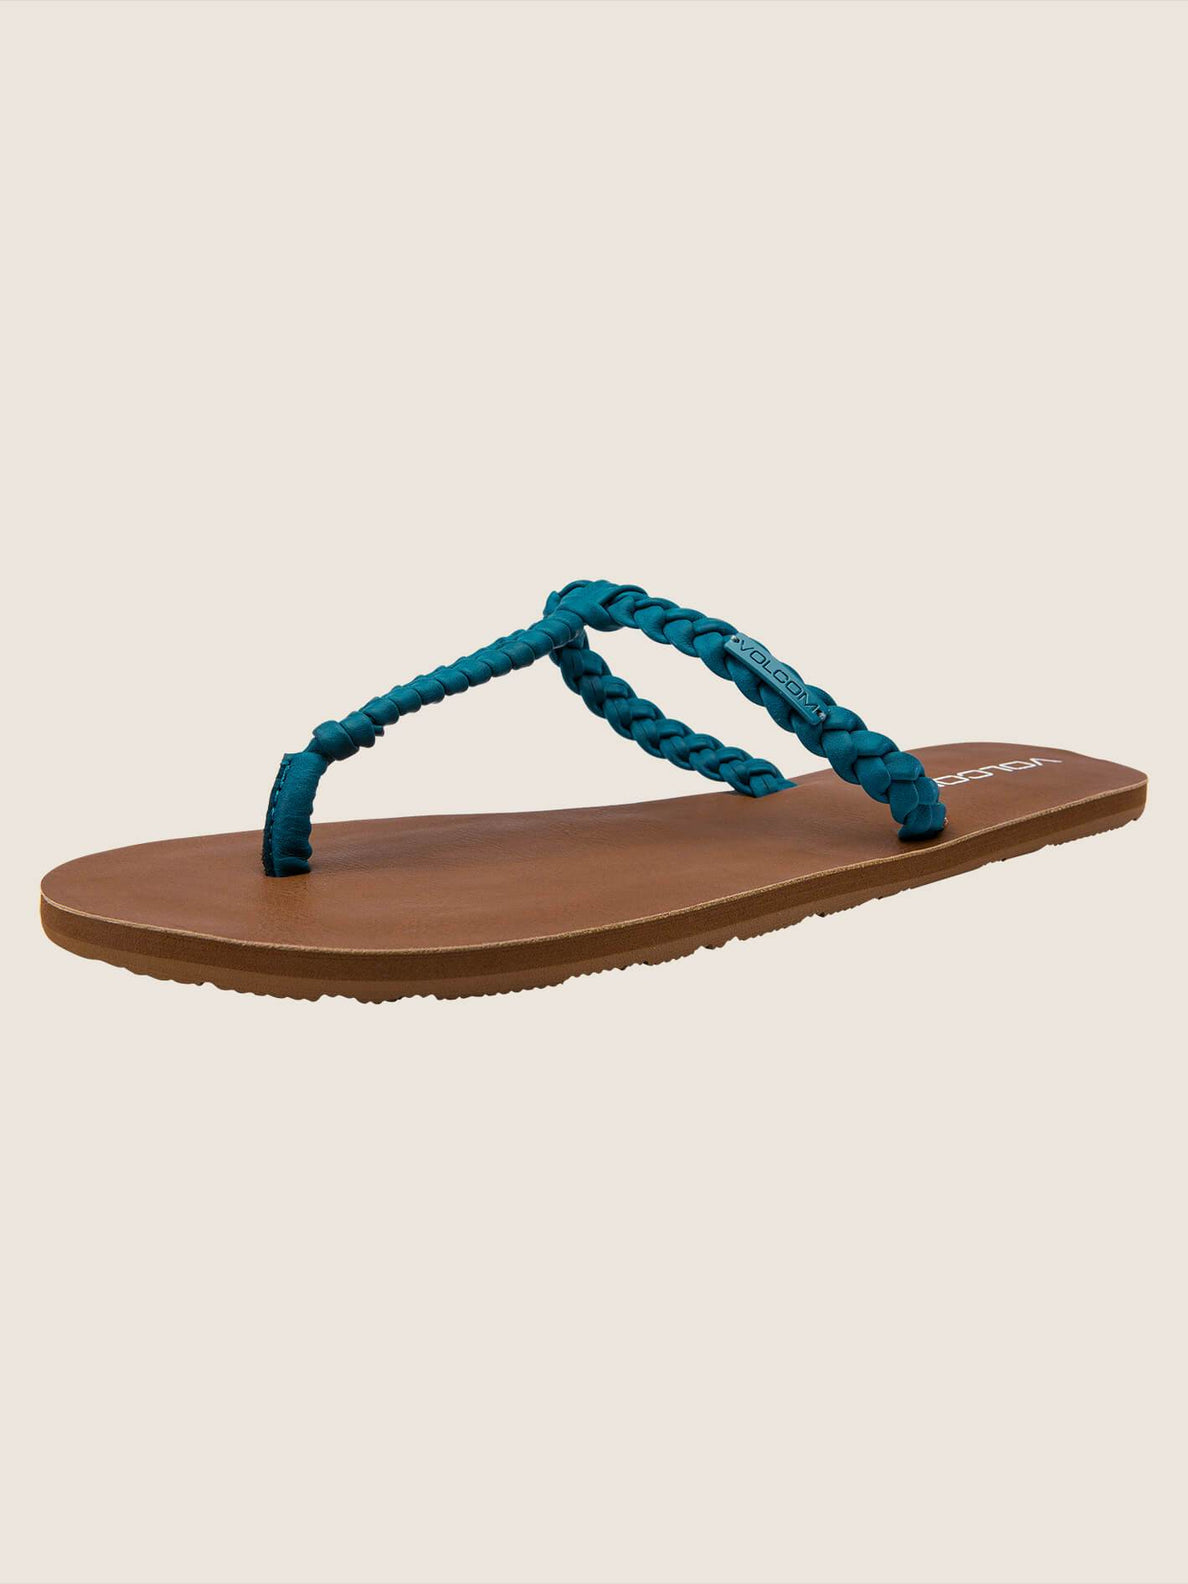 Fishtail Sandals In Teal, Back View